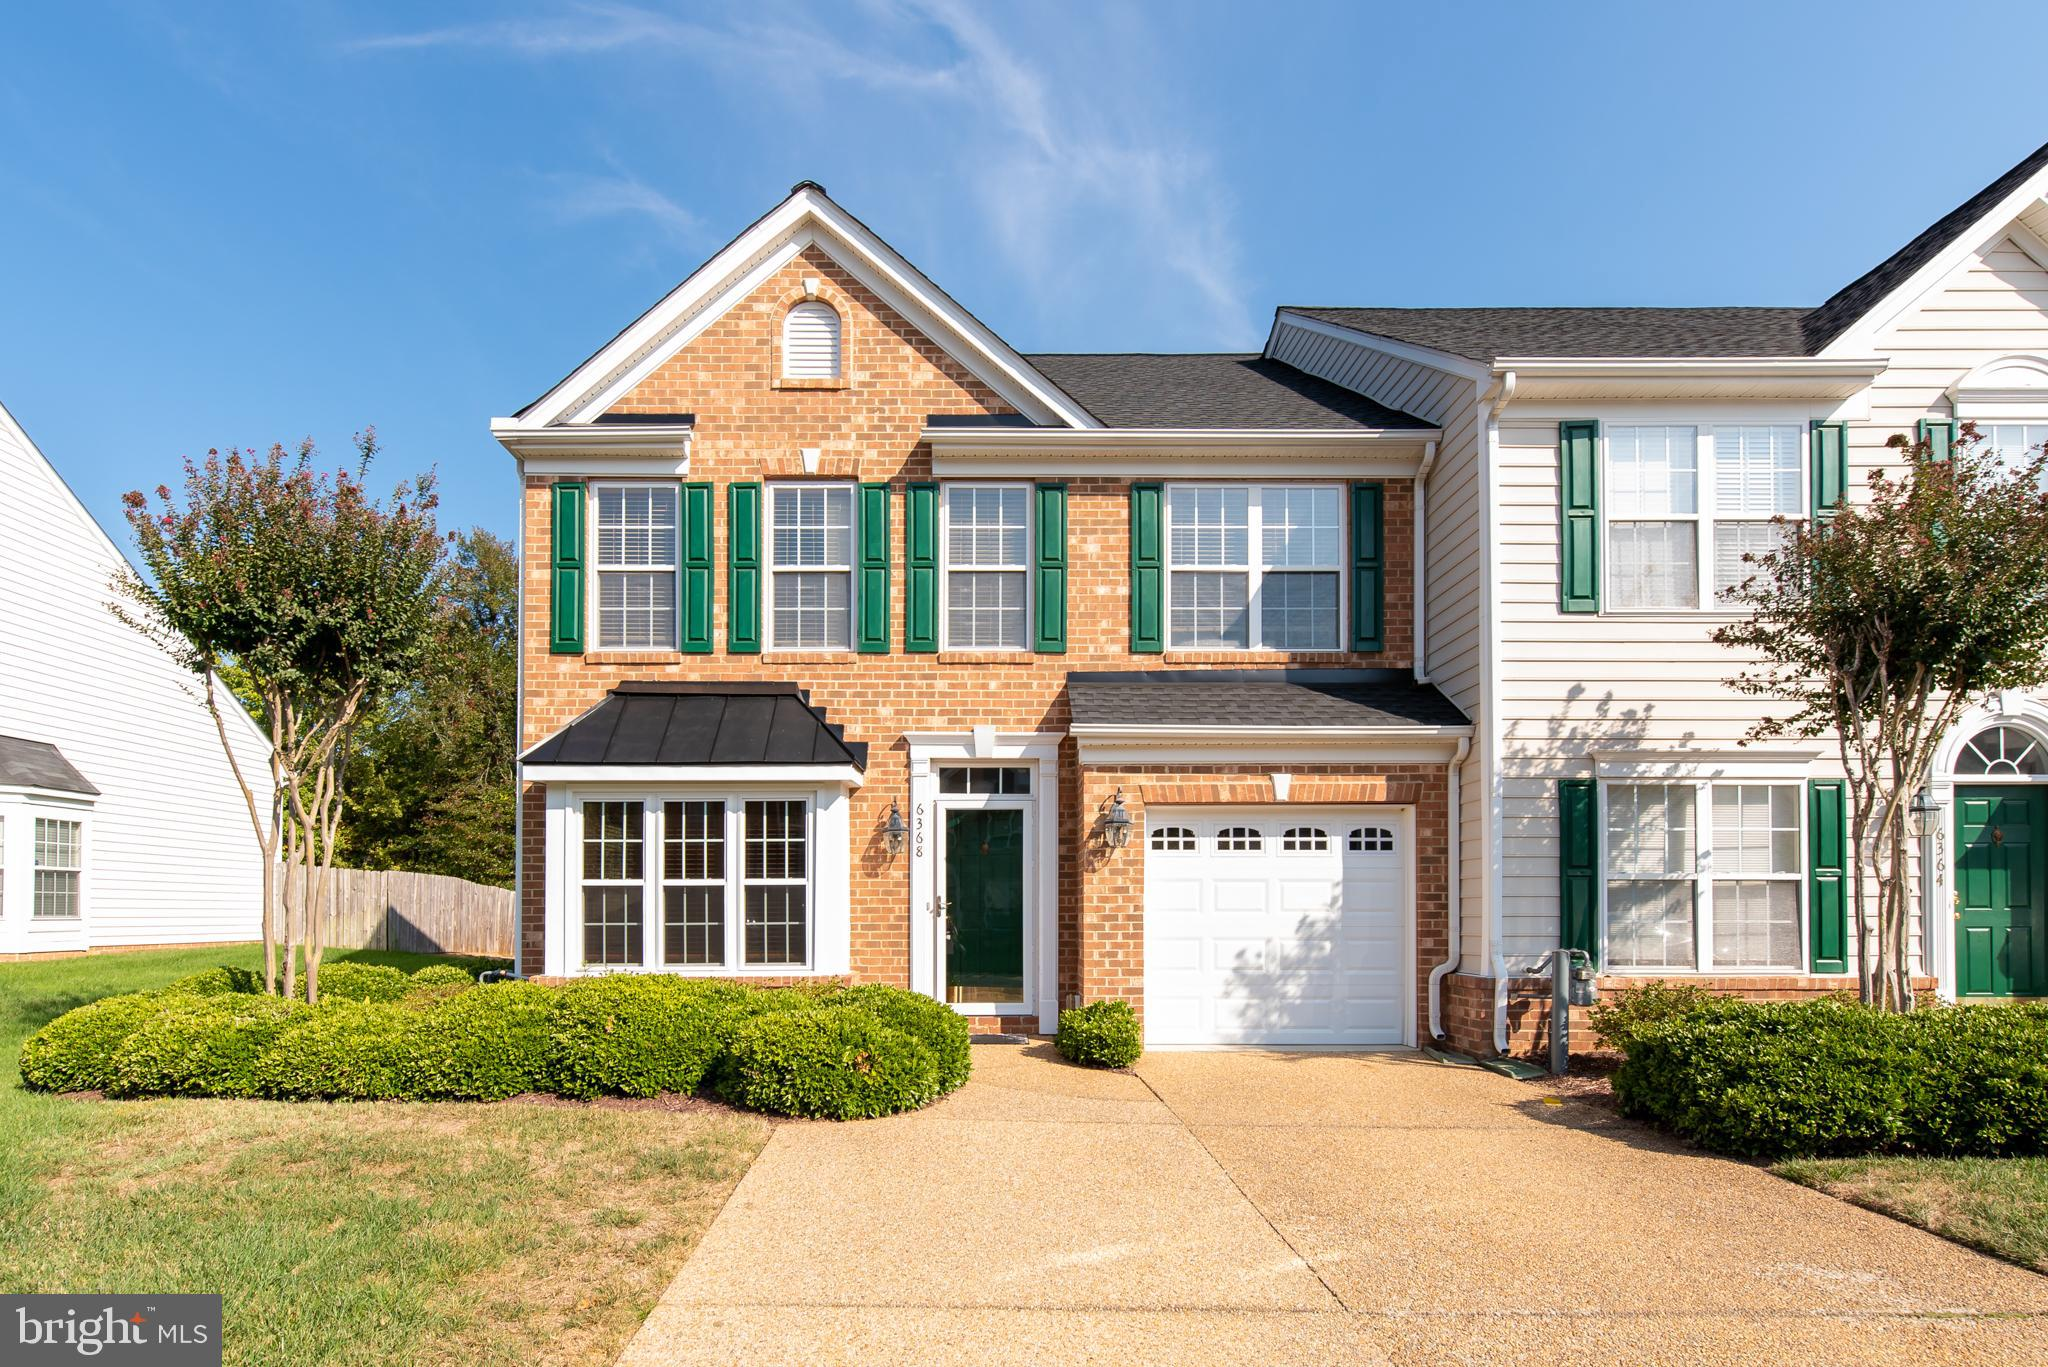 6368 EAGLES CREST Ln, Chesterfield, VA, 23832